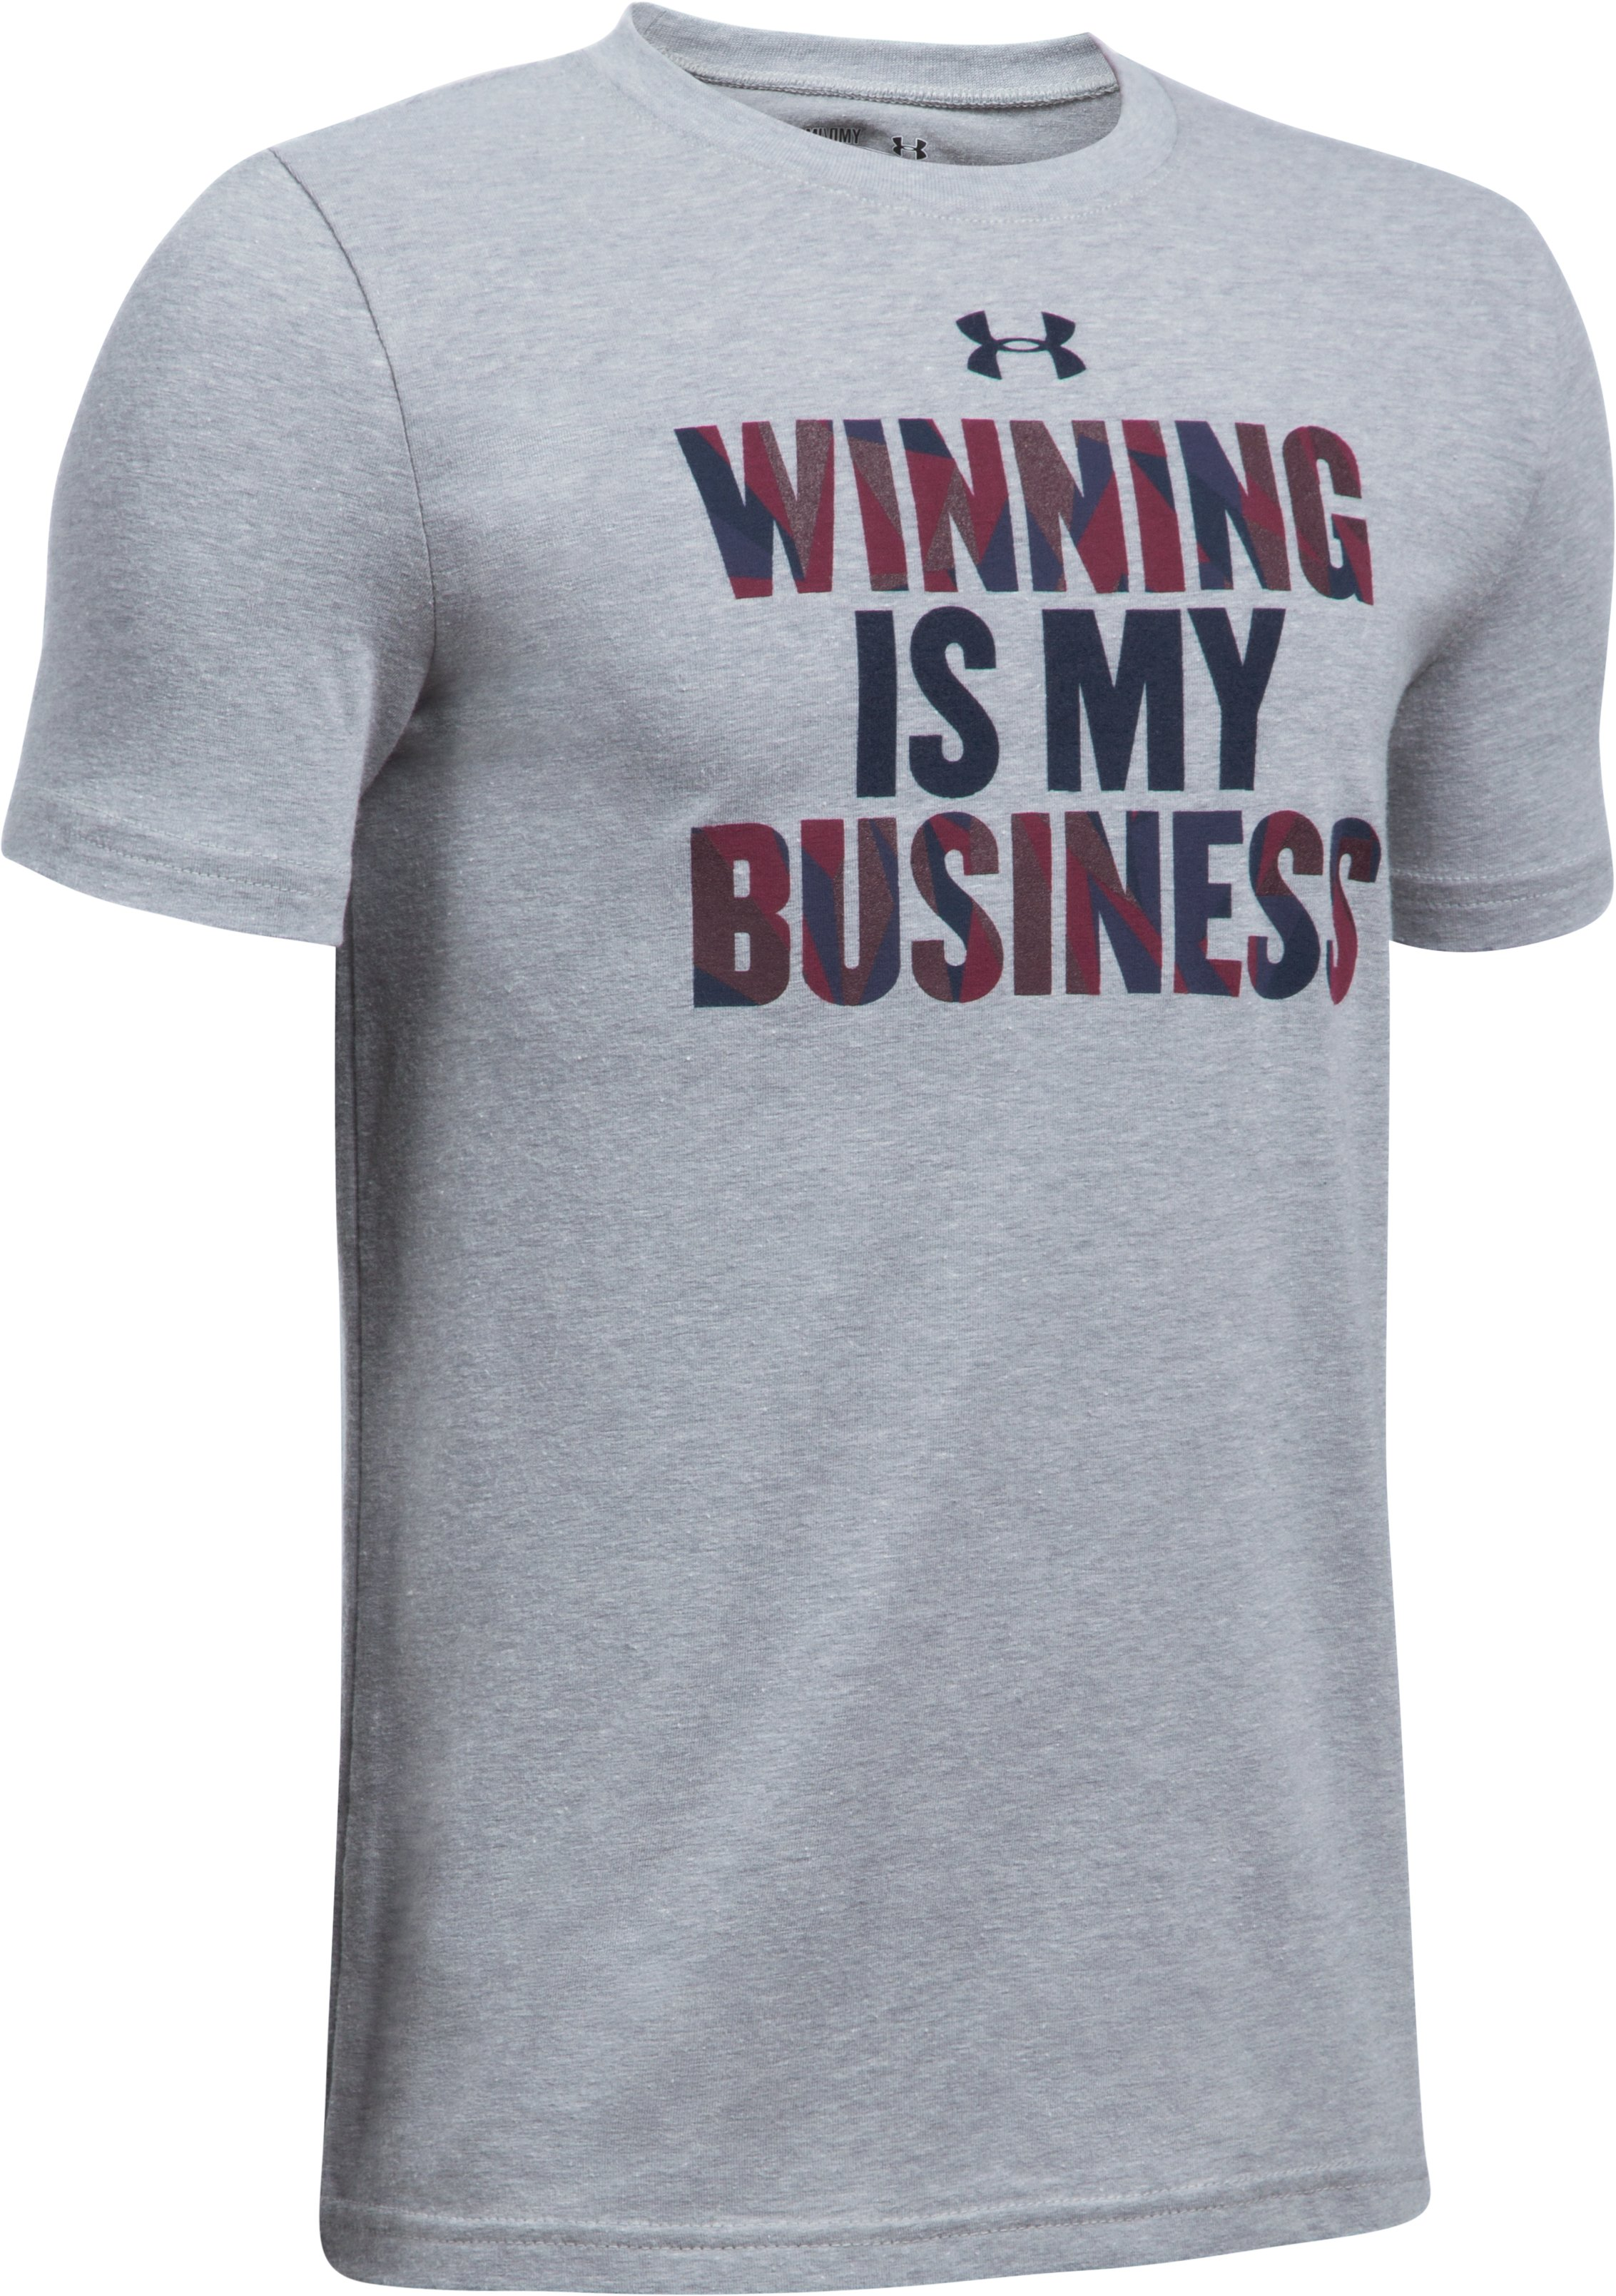 Boys' UA Winning Business T-Shirt, STEEL LIGHT HEATHER